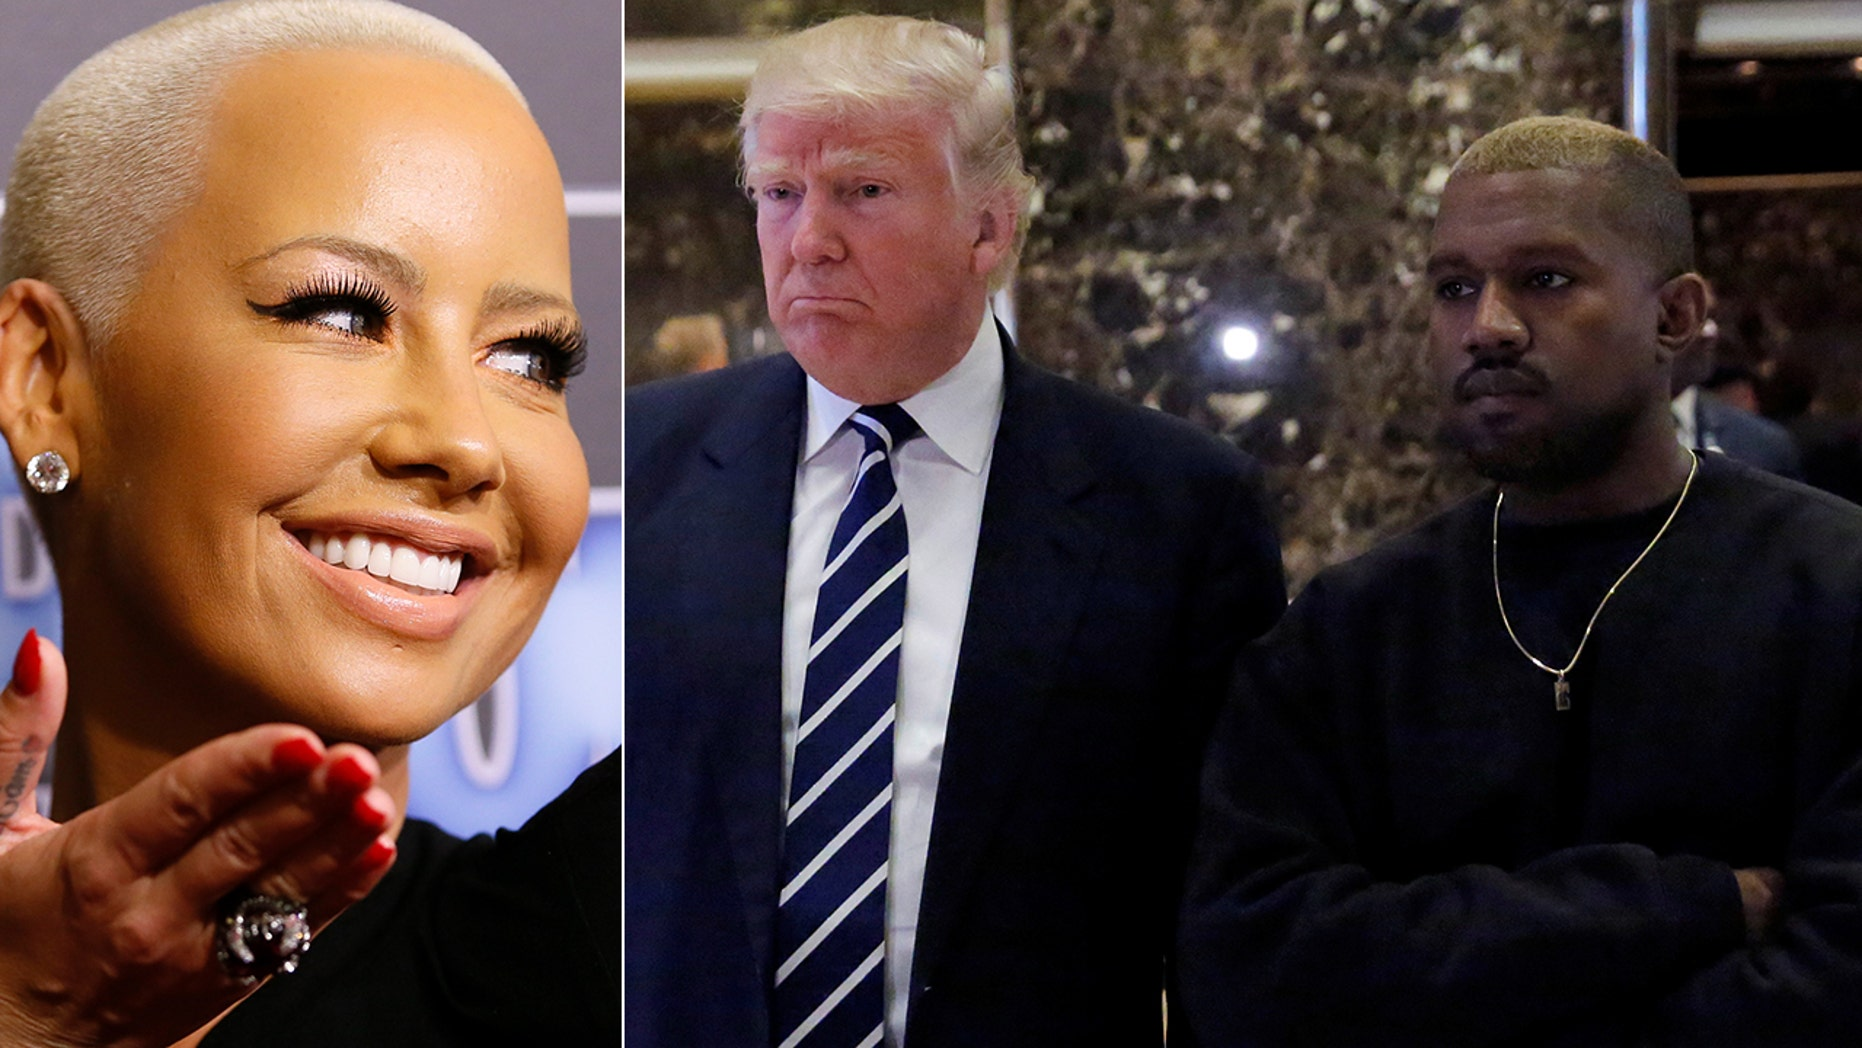 Amber Rose weighed in on Kanye West's support of President Trump.